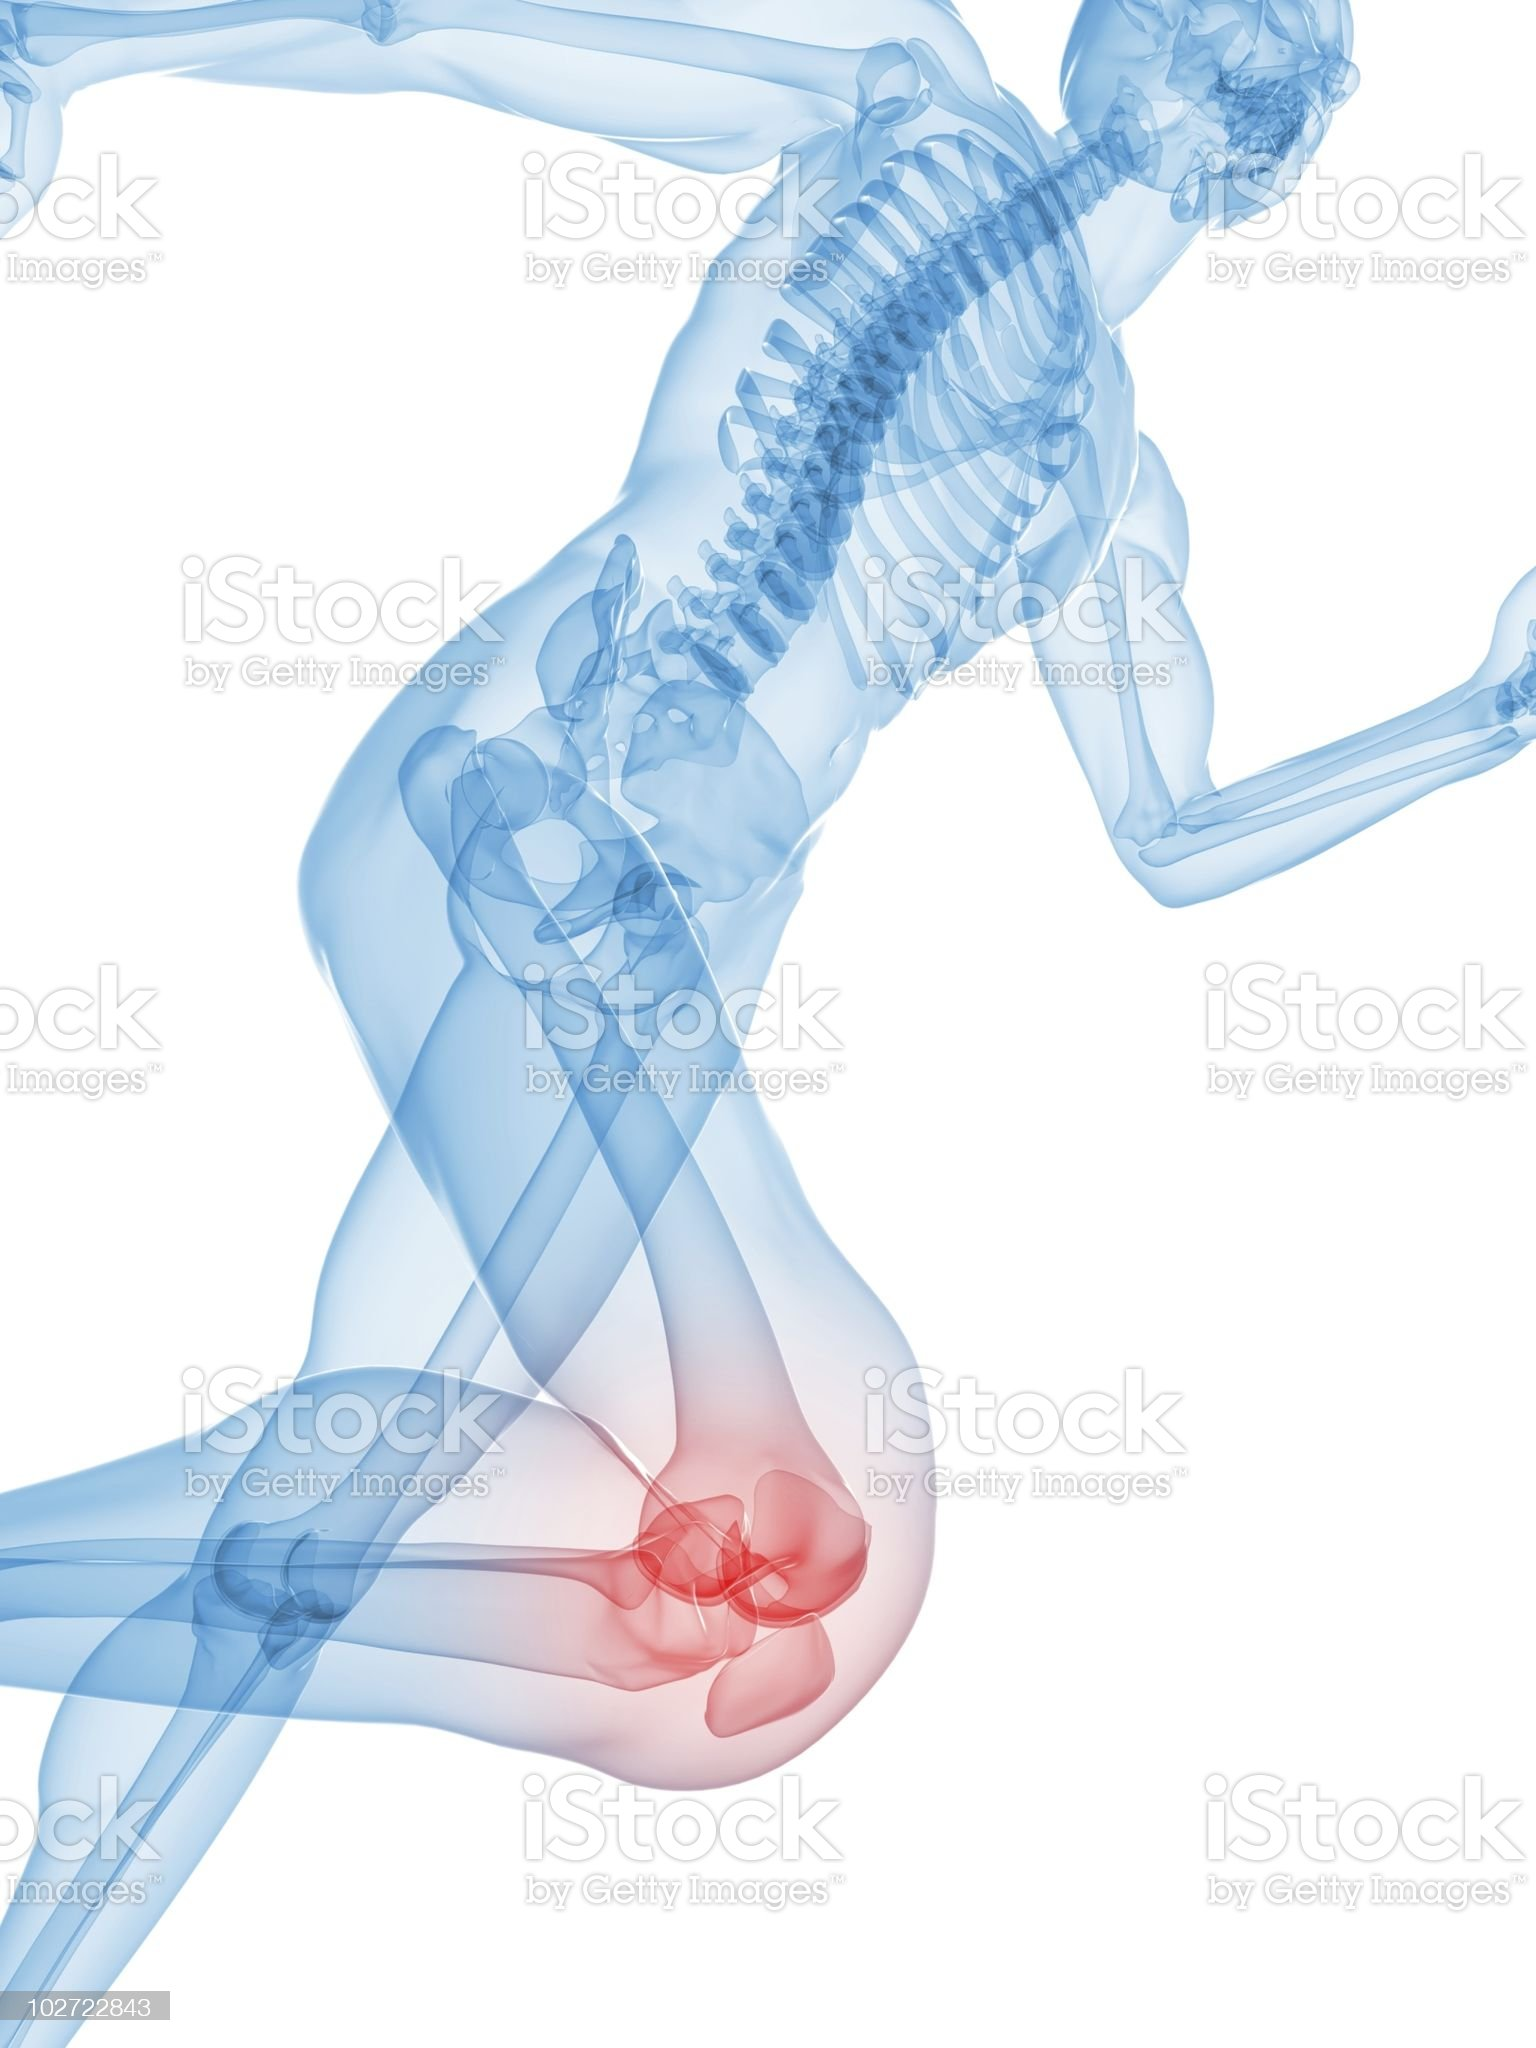 painful knee illustration royalty-free stock vector art